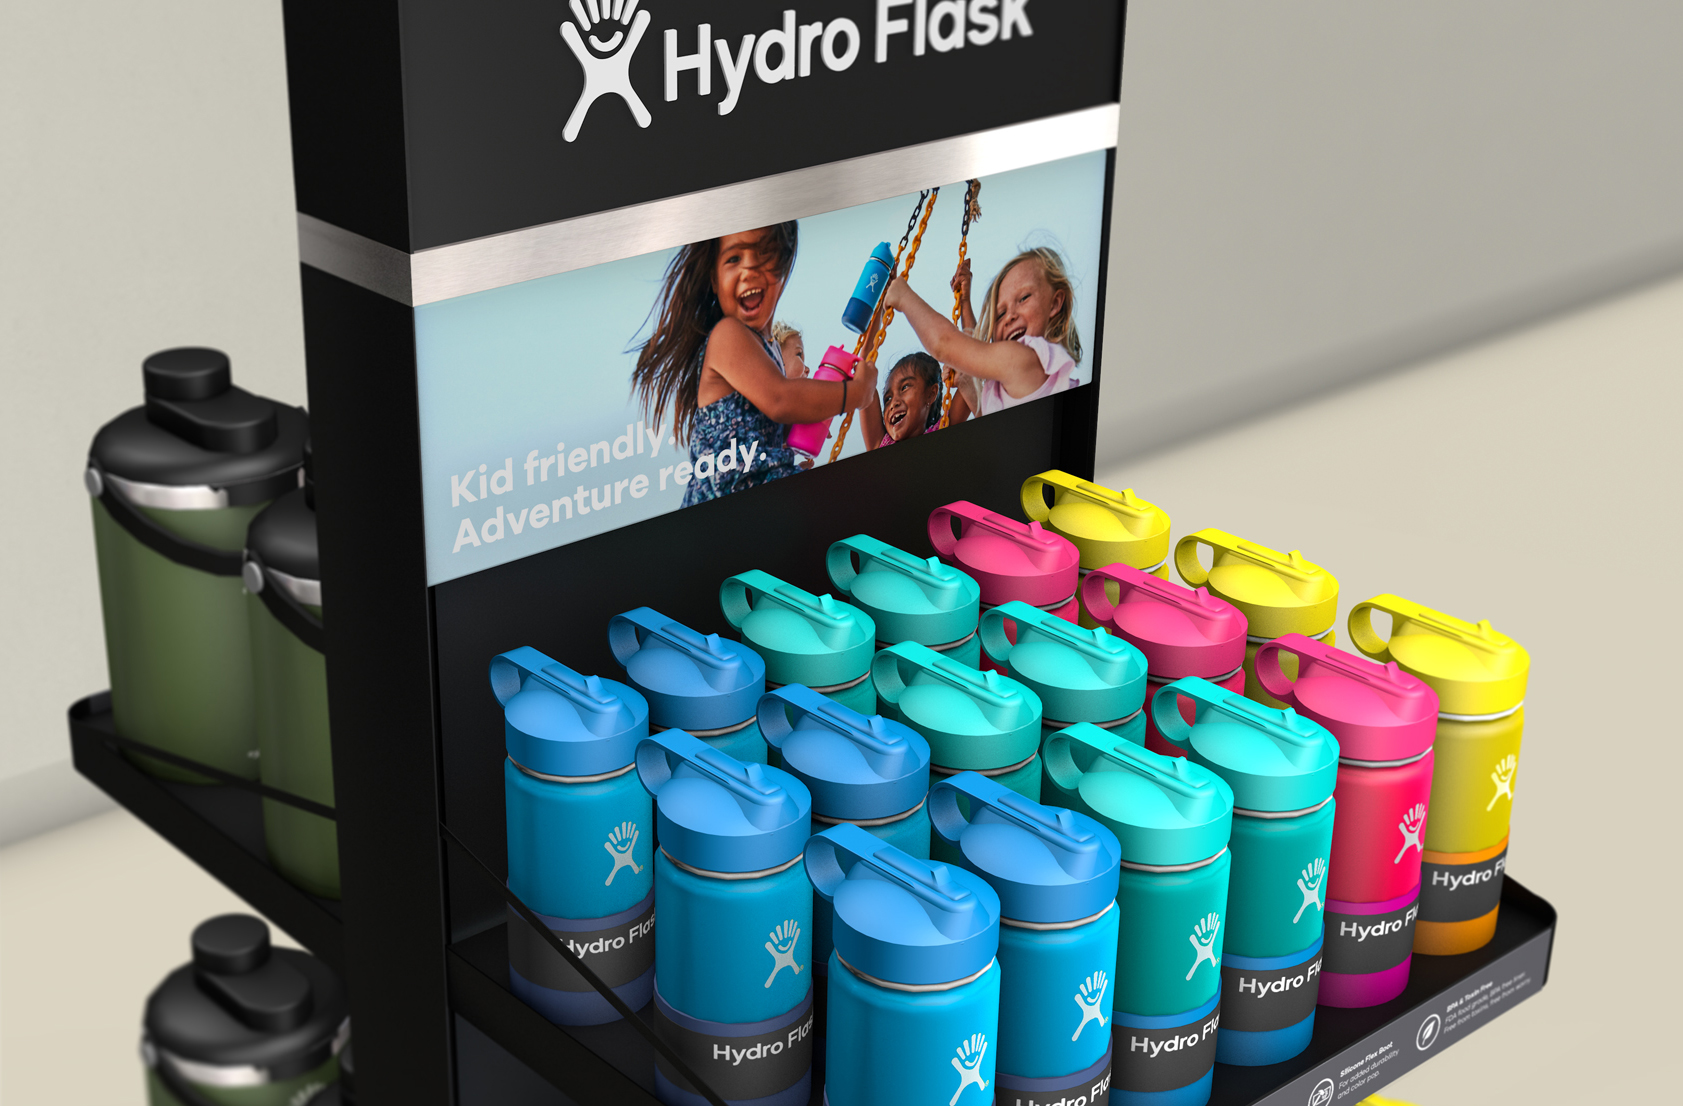 Digital render of hydro flask bottles organized in to a gradient color scheme